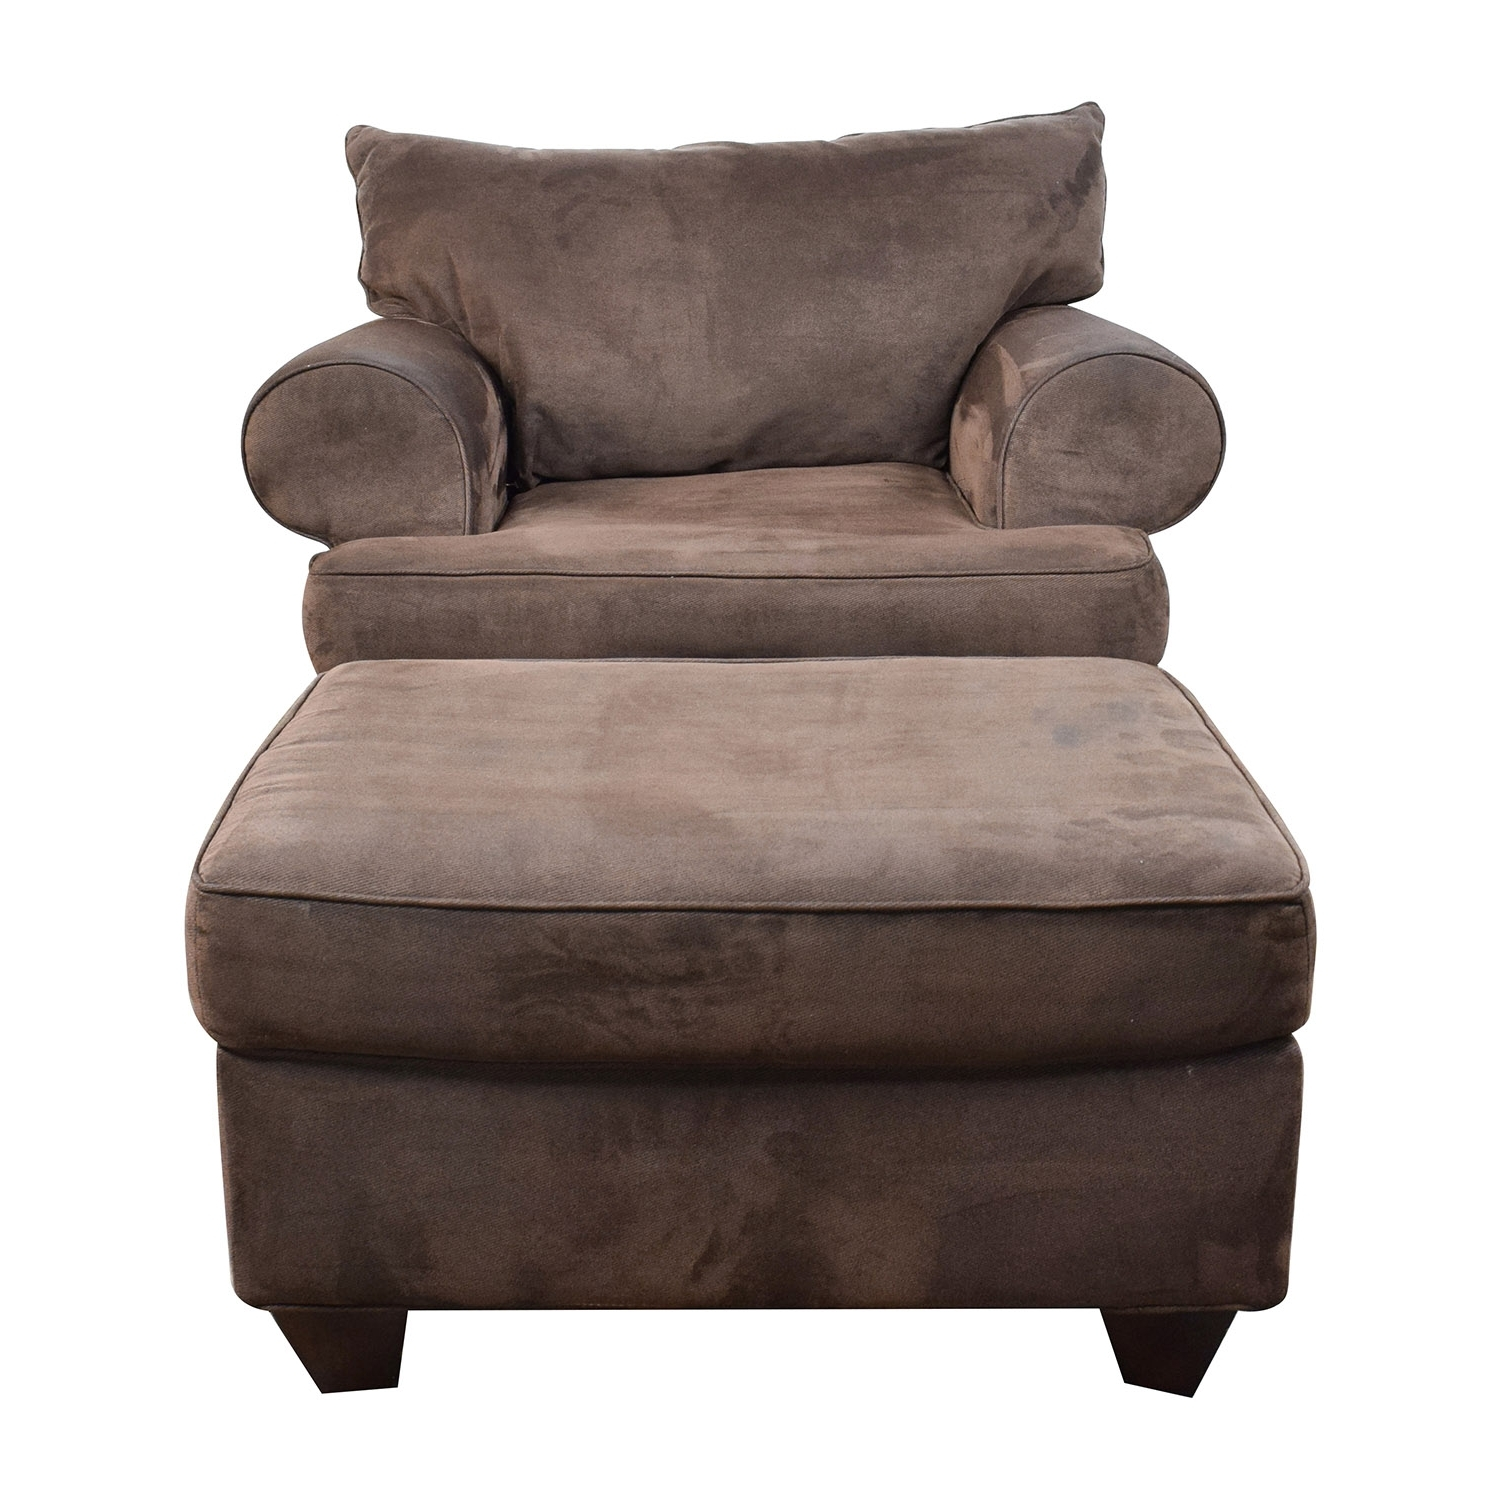 [%67% Off – Dark Brown Sofa Chair With Ottoman / Chairs Intended For Well Known Chairs With Ottoman|Chairs With Ottoman In Most Recently Released 67% Off – Dark Brown Sofa Chair With Ottoman / Chairs|Famous Chairs With Ottoman Regarding 67% Off – Dark Brown Sofa Chair With Ottoman / Chairs|Well Known 67% Off – Dark Brown Sofa Chair With Ottoman / Chairs Inside Chairs With Ottoman%] (View 2 of 15)